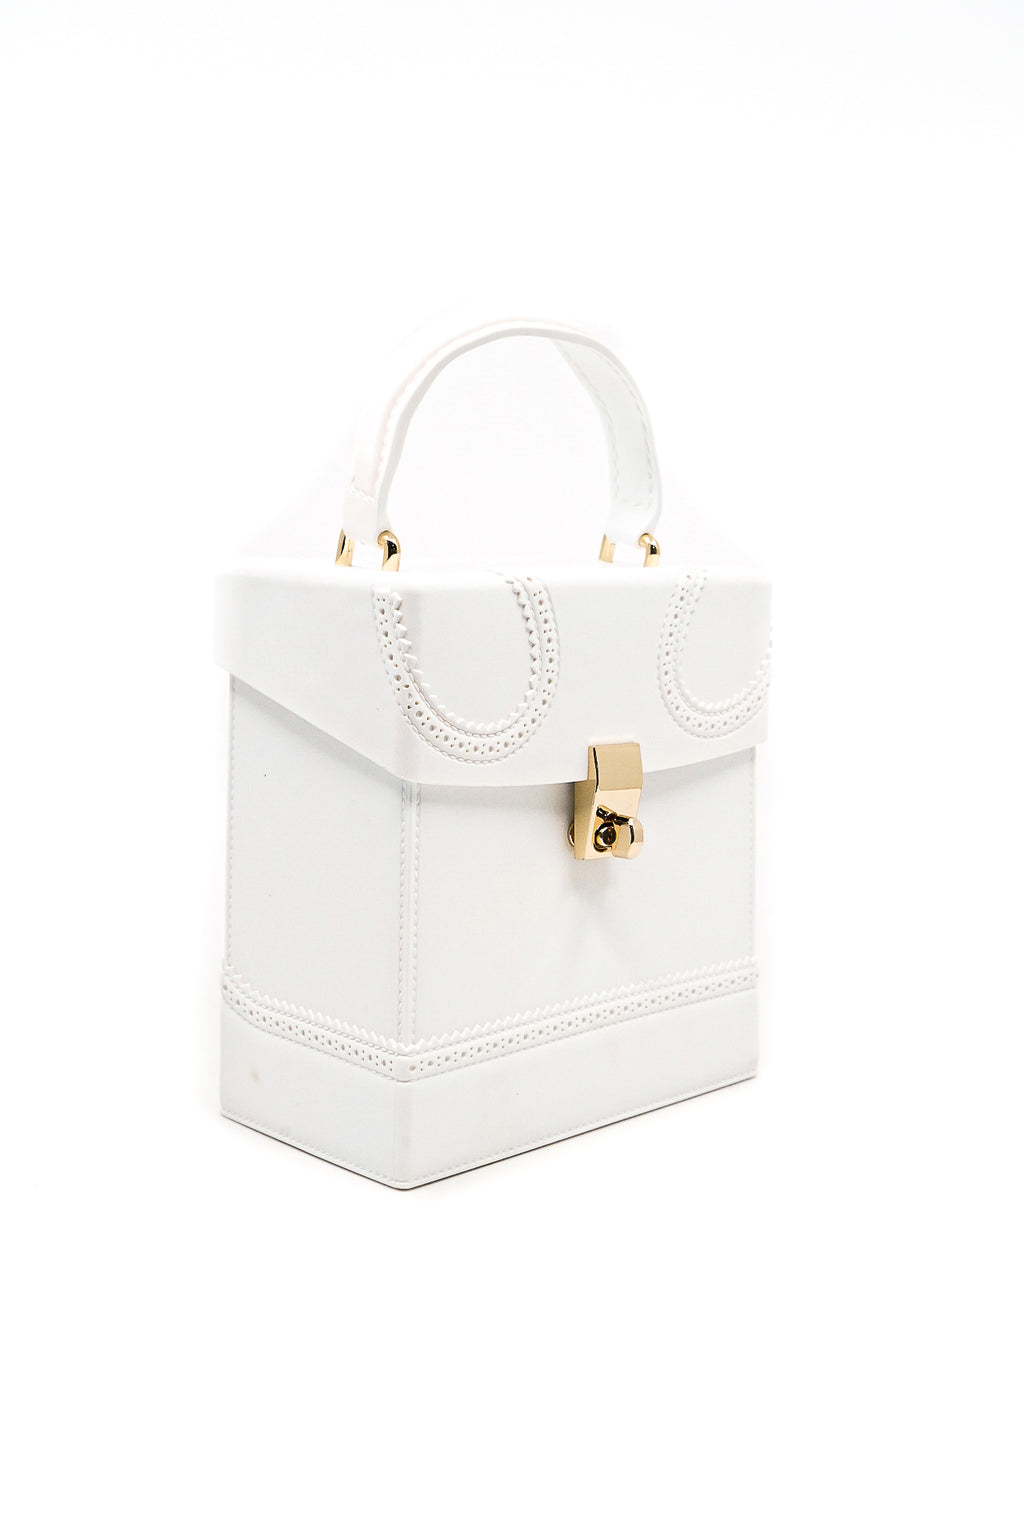 Square Box Jelly Handbag with Handle and Strap in White - Fashion House USA